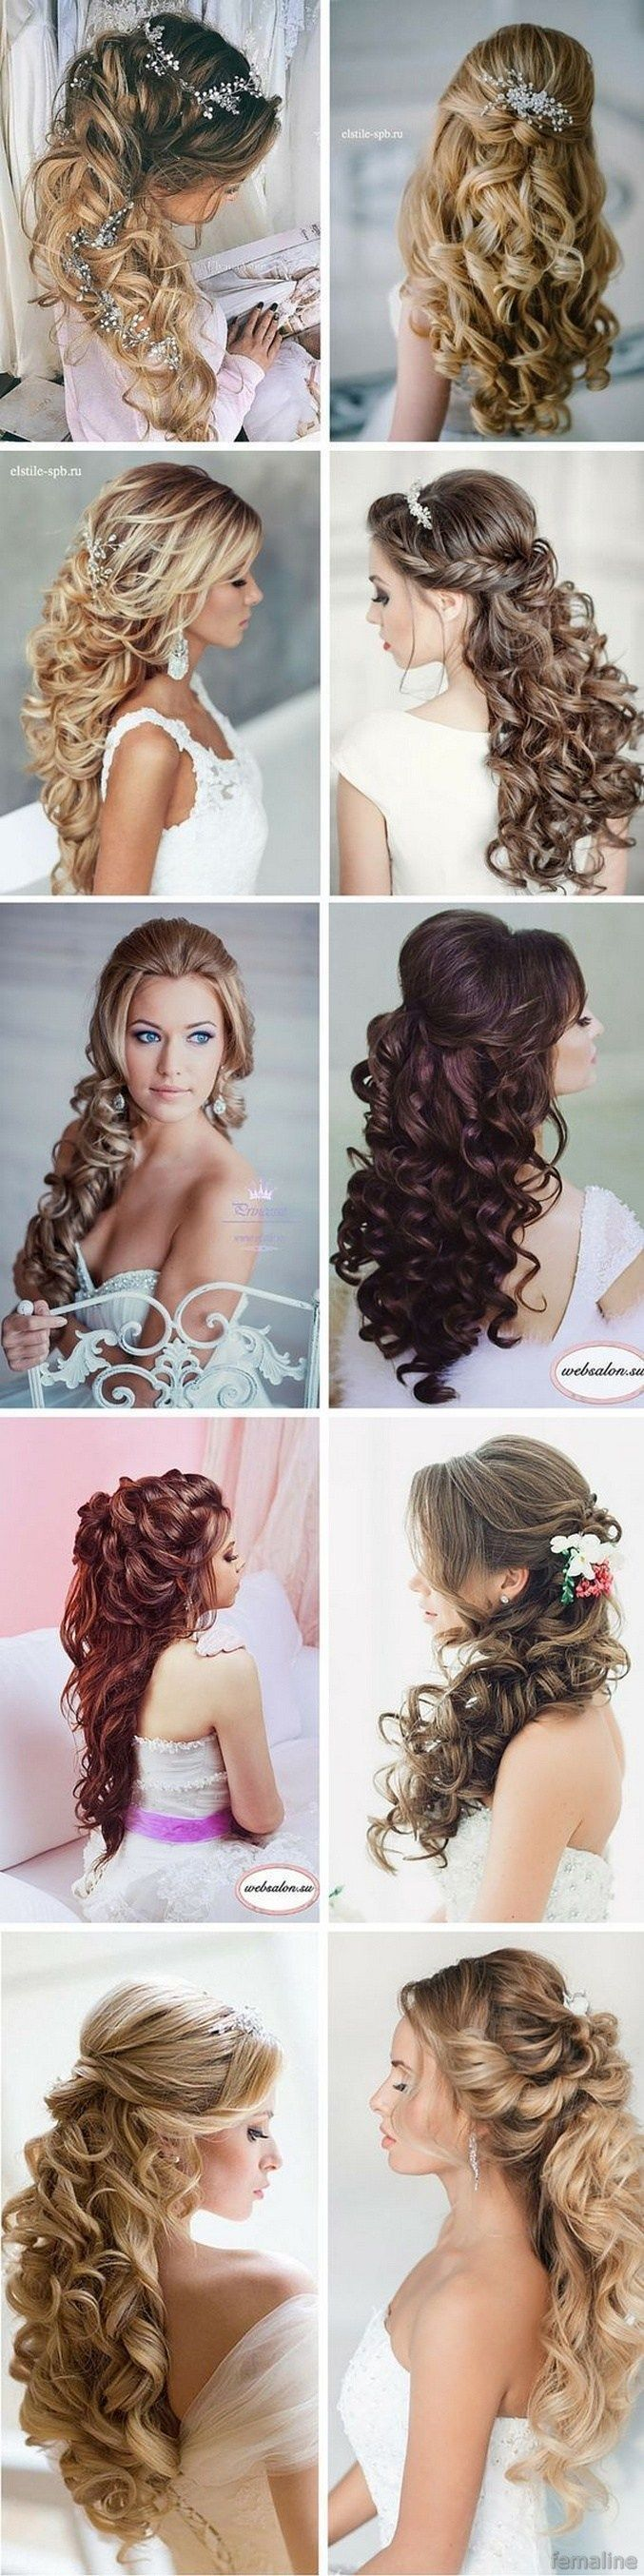 weddings hair styles best 25 prom hairstyles ideas on prom 7965